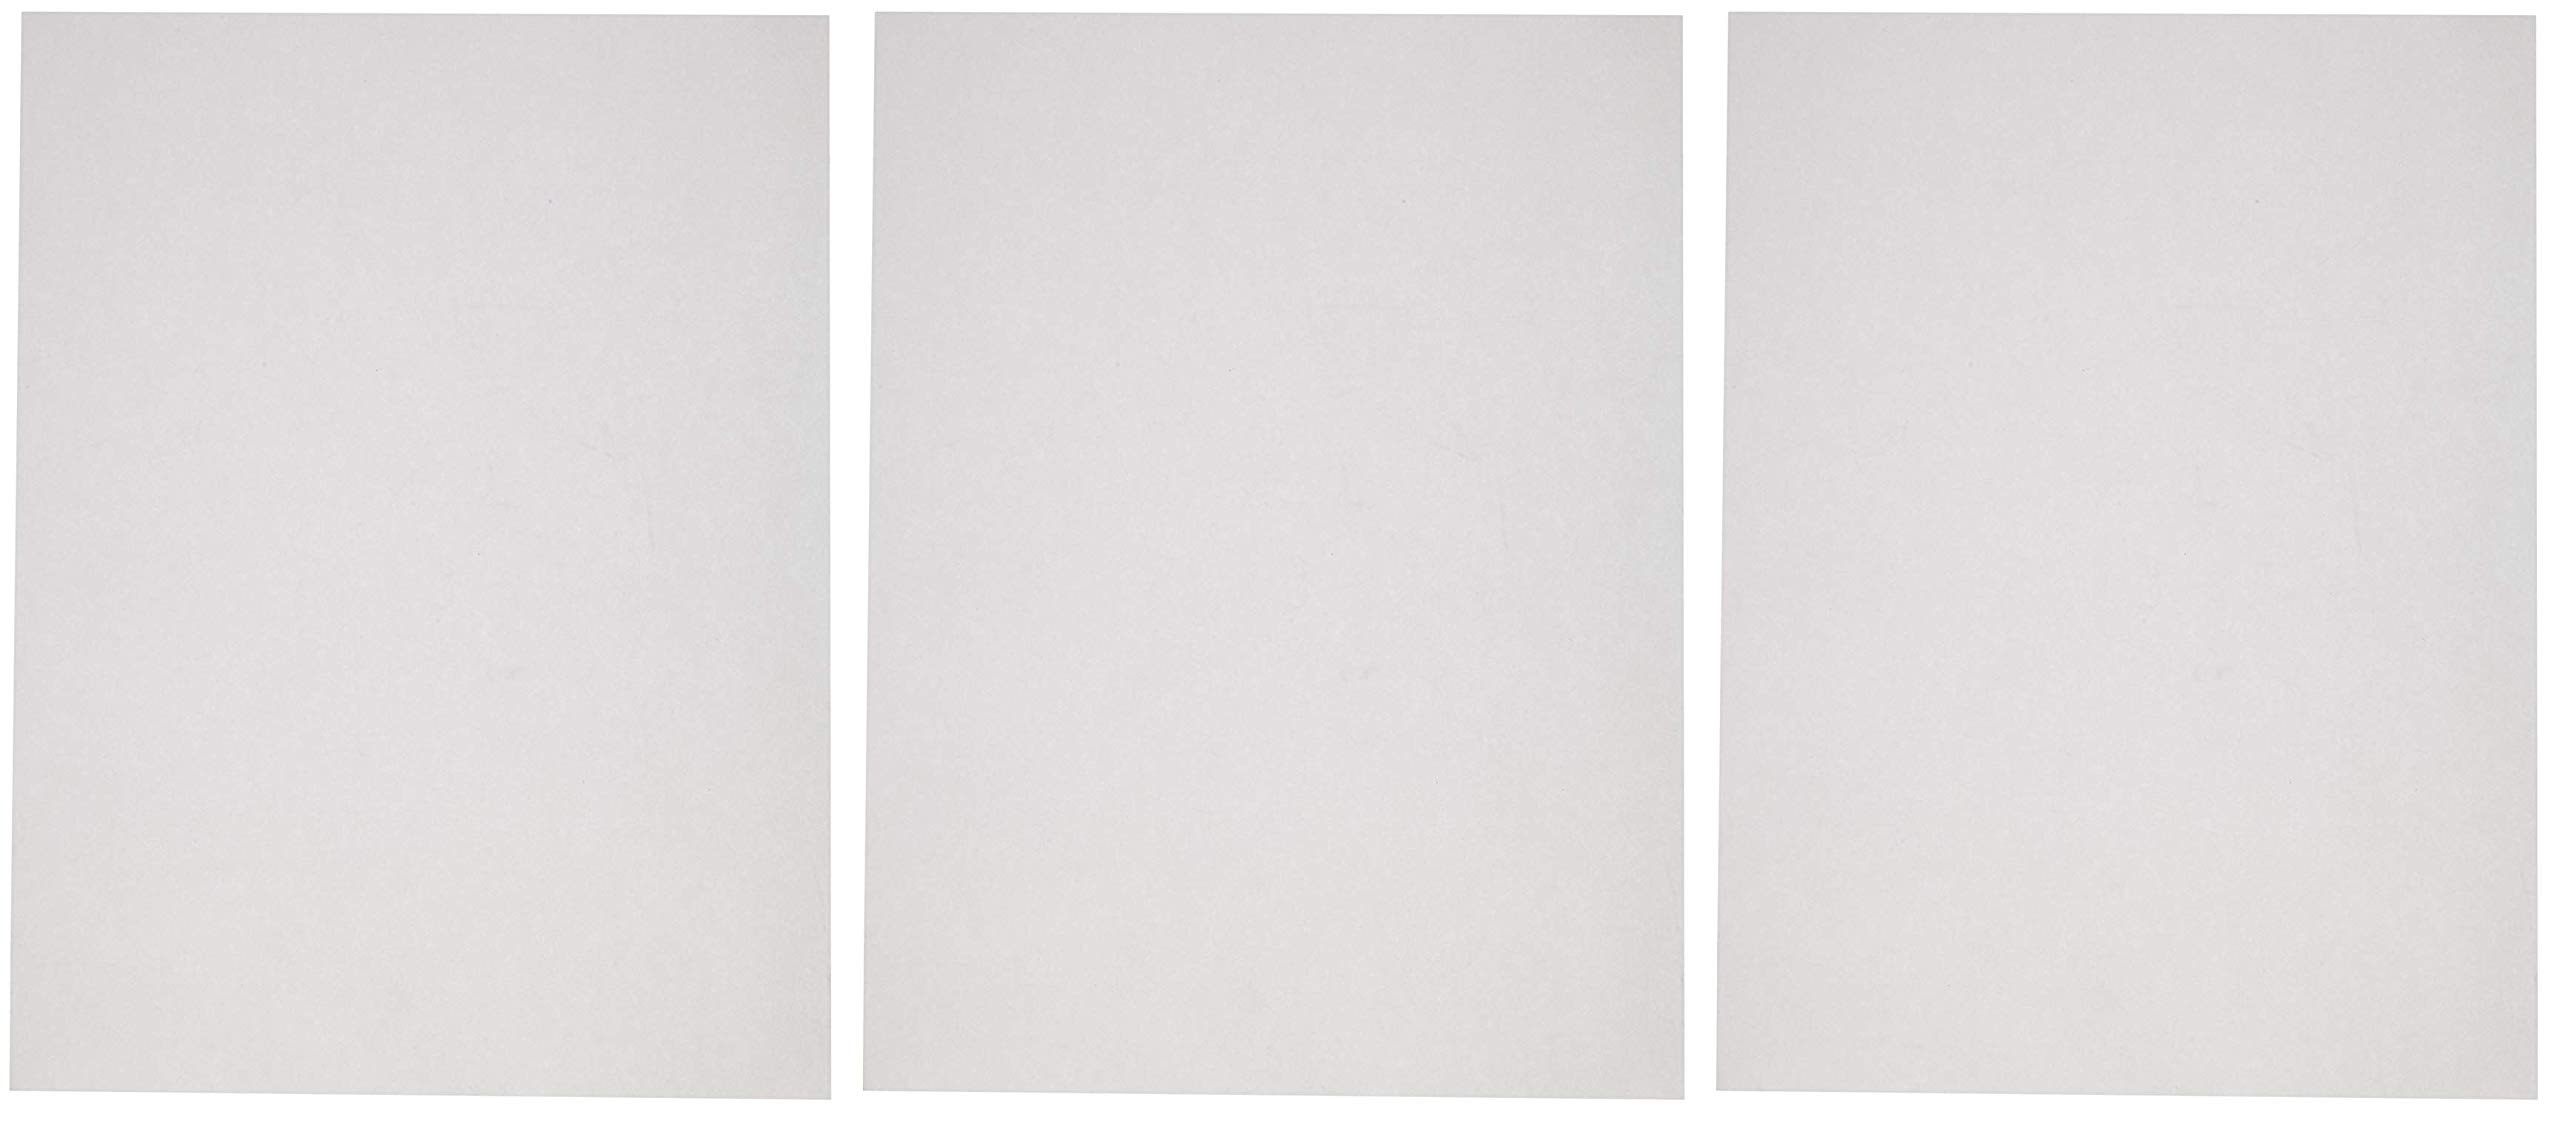 Sax Sulphite Drawing Paper, 50 lb, 9 x 12 Inches, Extra-White, Pack of 500 (Вundlе оf Тhrее) by Sax